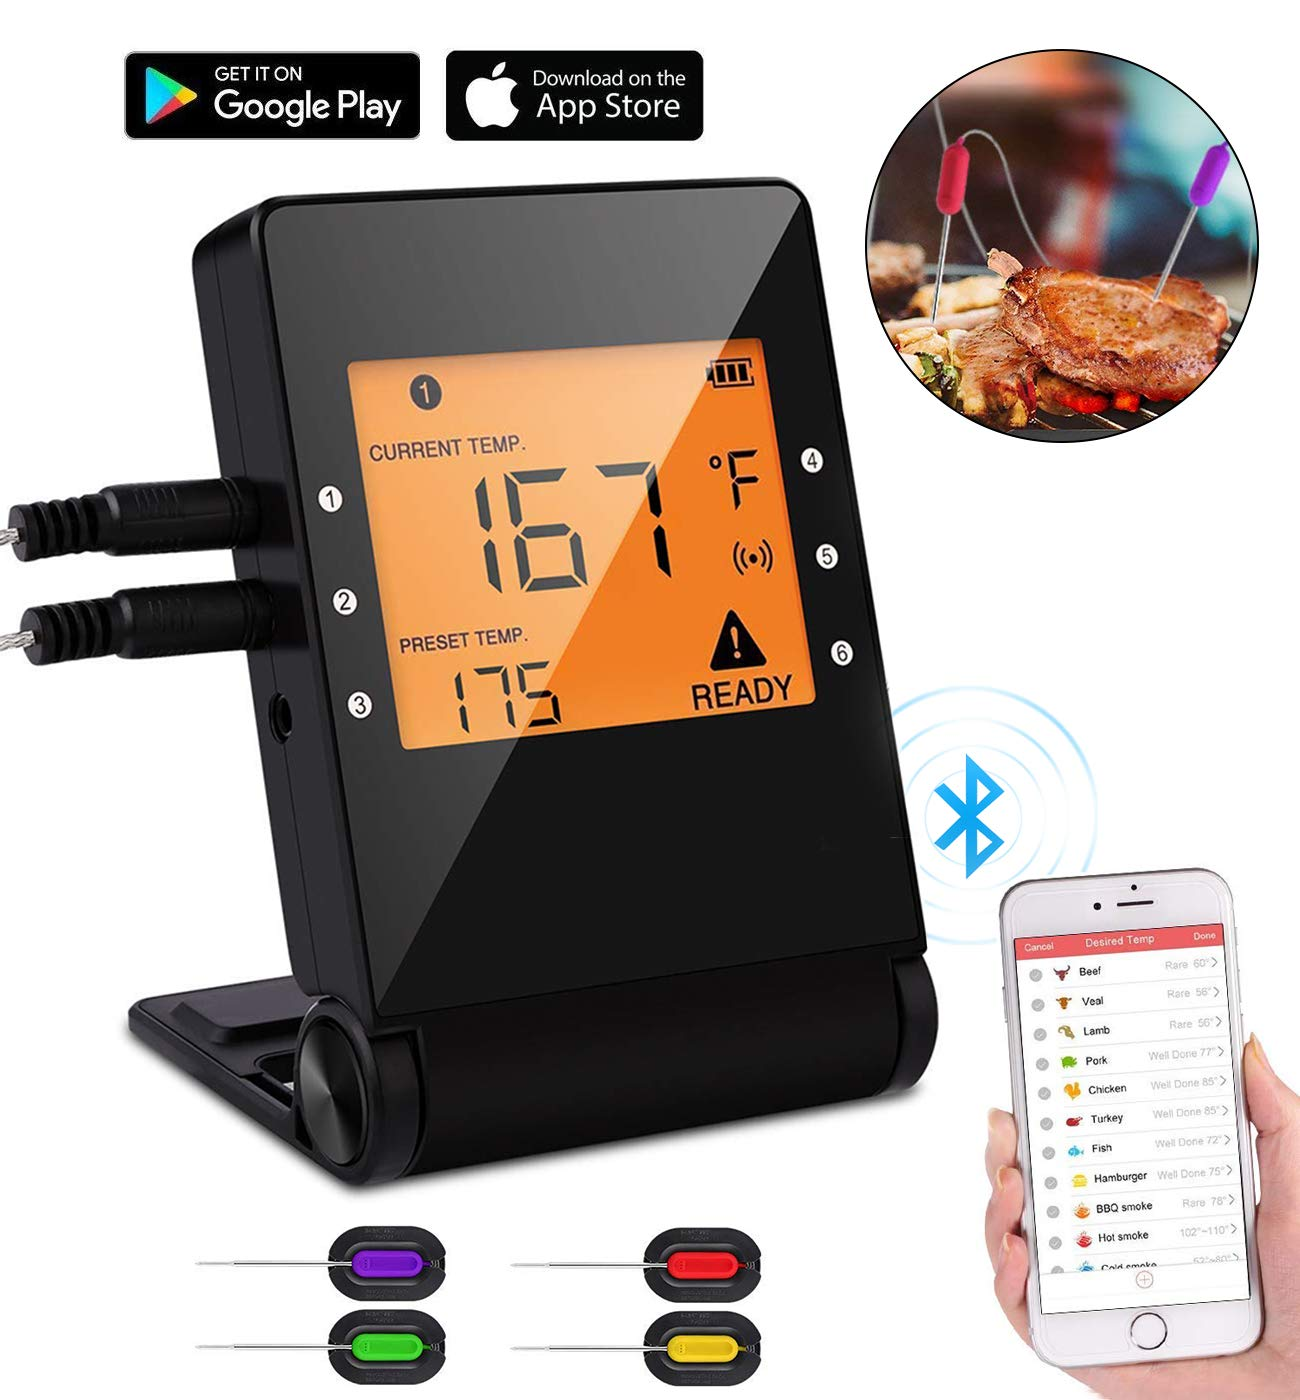 Digital Bluetooth Meat Thermometer,Wireless Remote Cooking Food Grill Thermometer with 4 Stainless Steel Probes for instant read BBQ Grilling, Kitchen Cooking and Smokers Thermometer